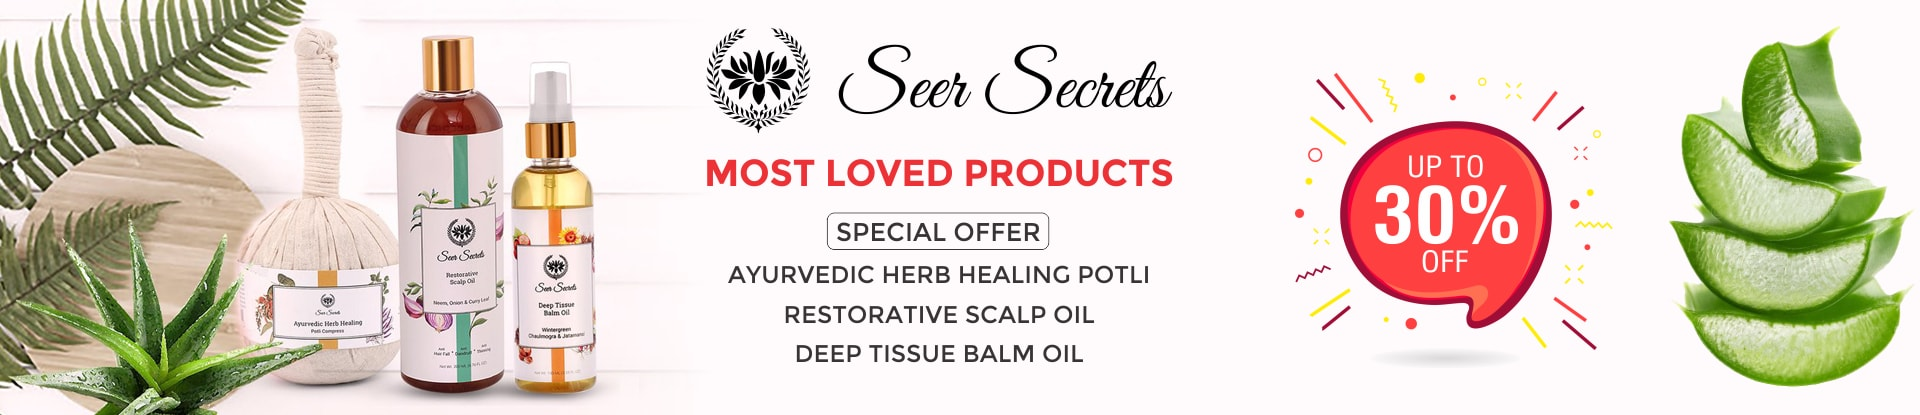 Shop Seer Secrets Product at Retail Pharma